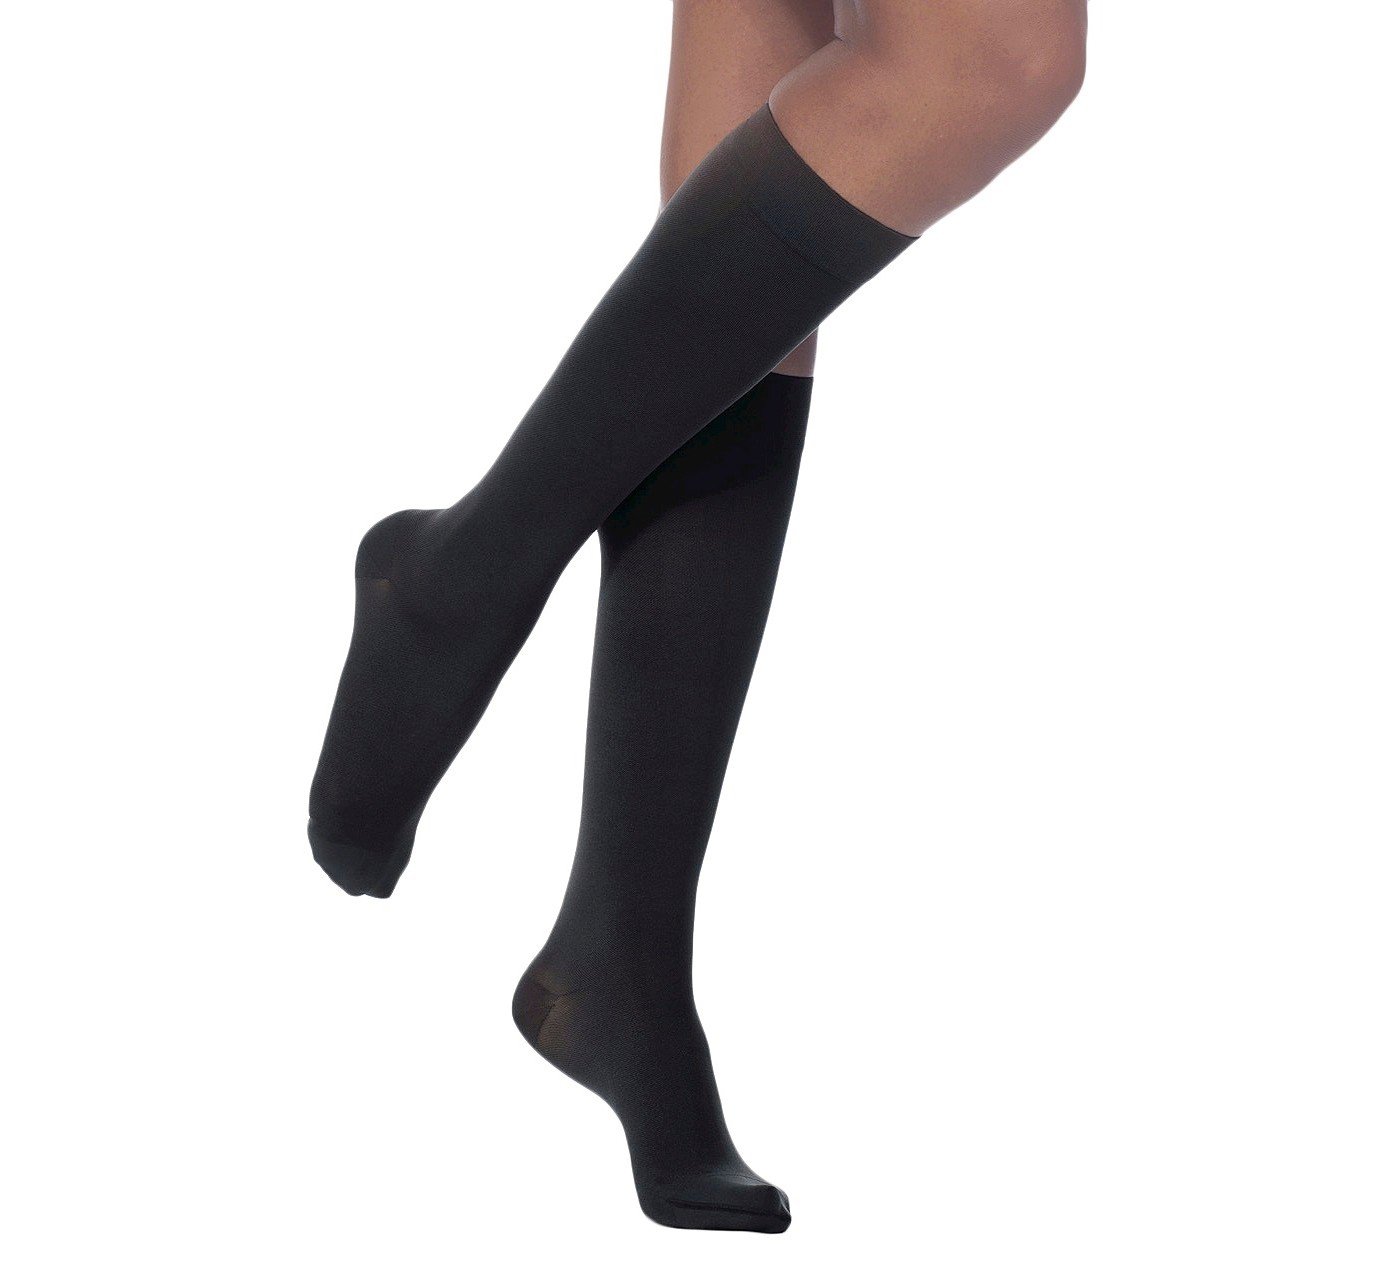 20-30 MmHg Compression Socks For Women And Men Medical, Nursing, For Running, Athletic, Edema, Diabetic, Varicose Veins, Travel